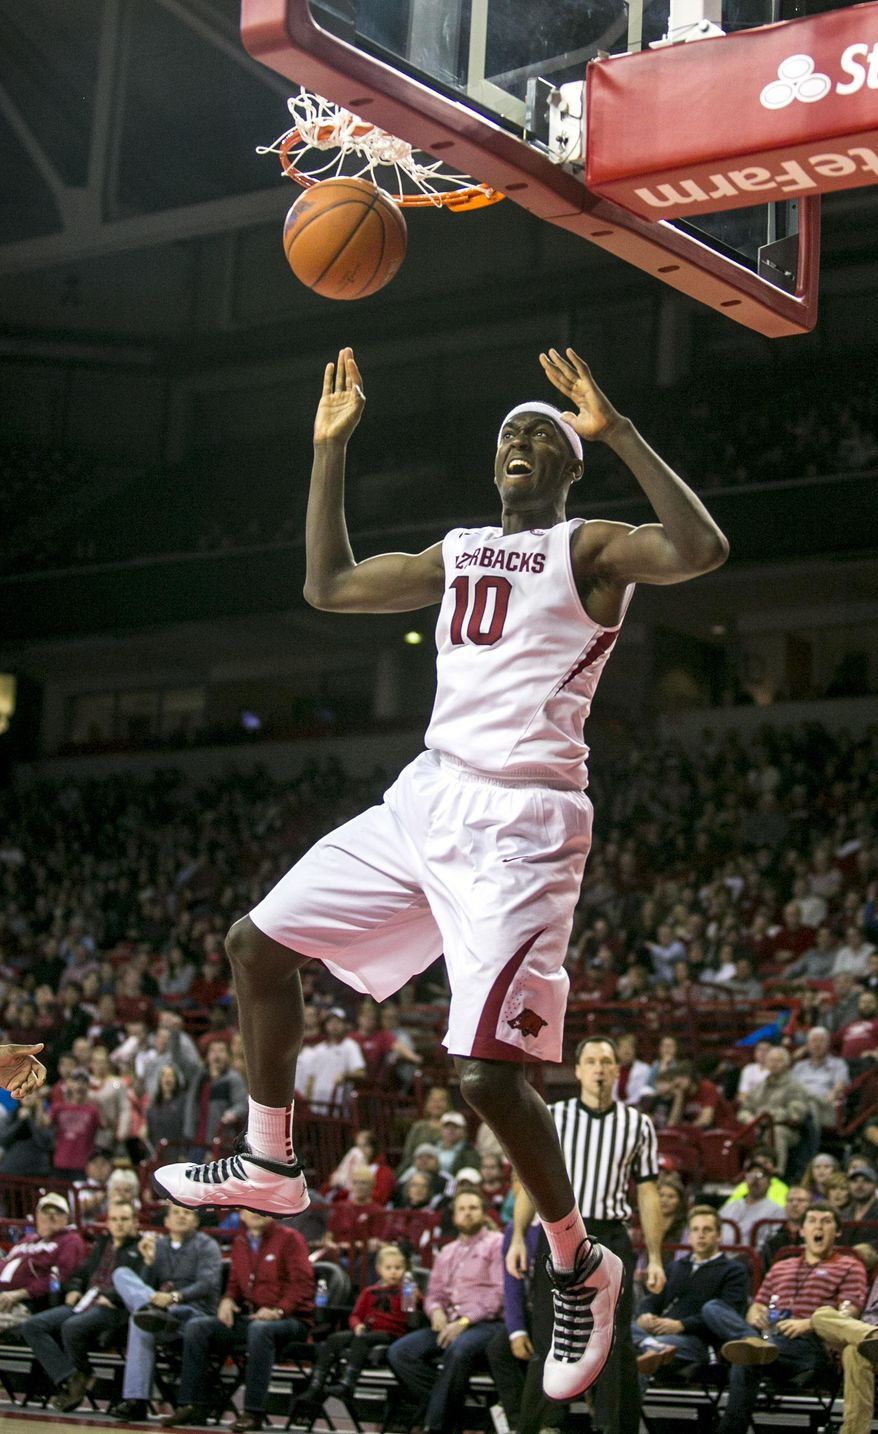 Arkansas forward Bobby Portis (10) slams an alley-oop dunk during the first half of an NCAA college basketball game against Alabama, Wednesday, Feb. 5, 2014, in Fayetteville, Ark. Arkansas defeated Alabama 65-58. (AP Photo/Gareth Patterson)